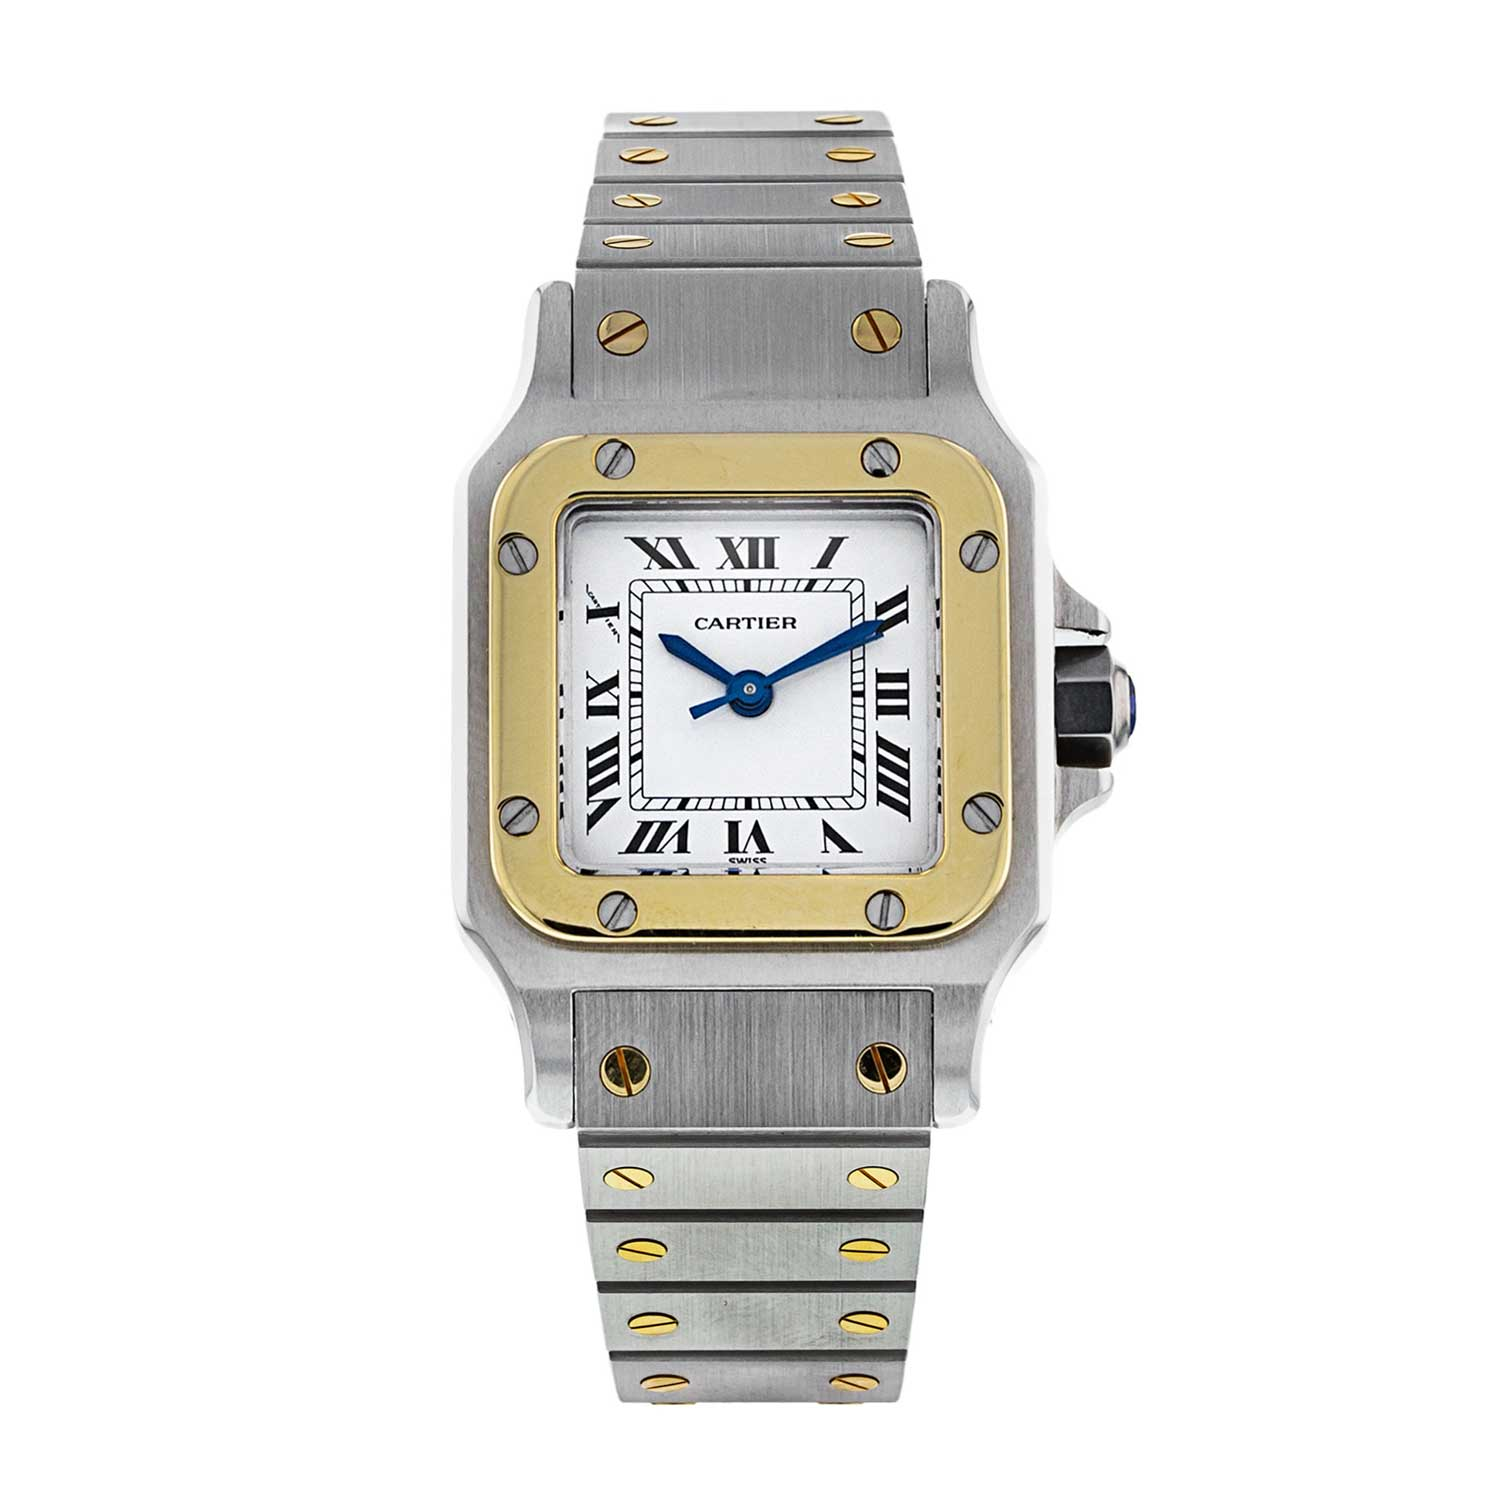 The present example of the Cartier Santos Galbée in our shop is from 1996 and it comes with a two-year warranty from Watchfinder.